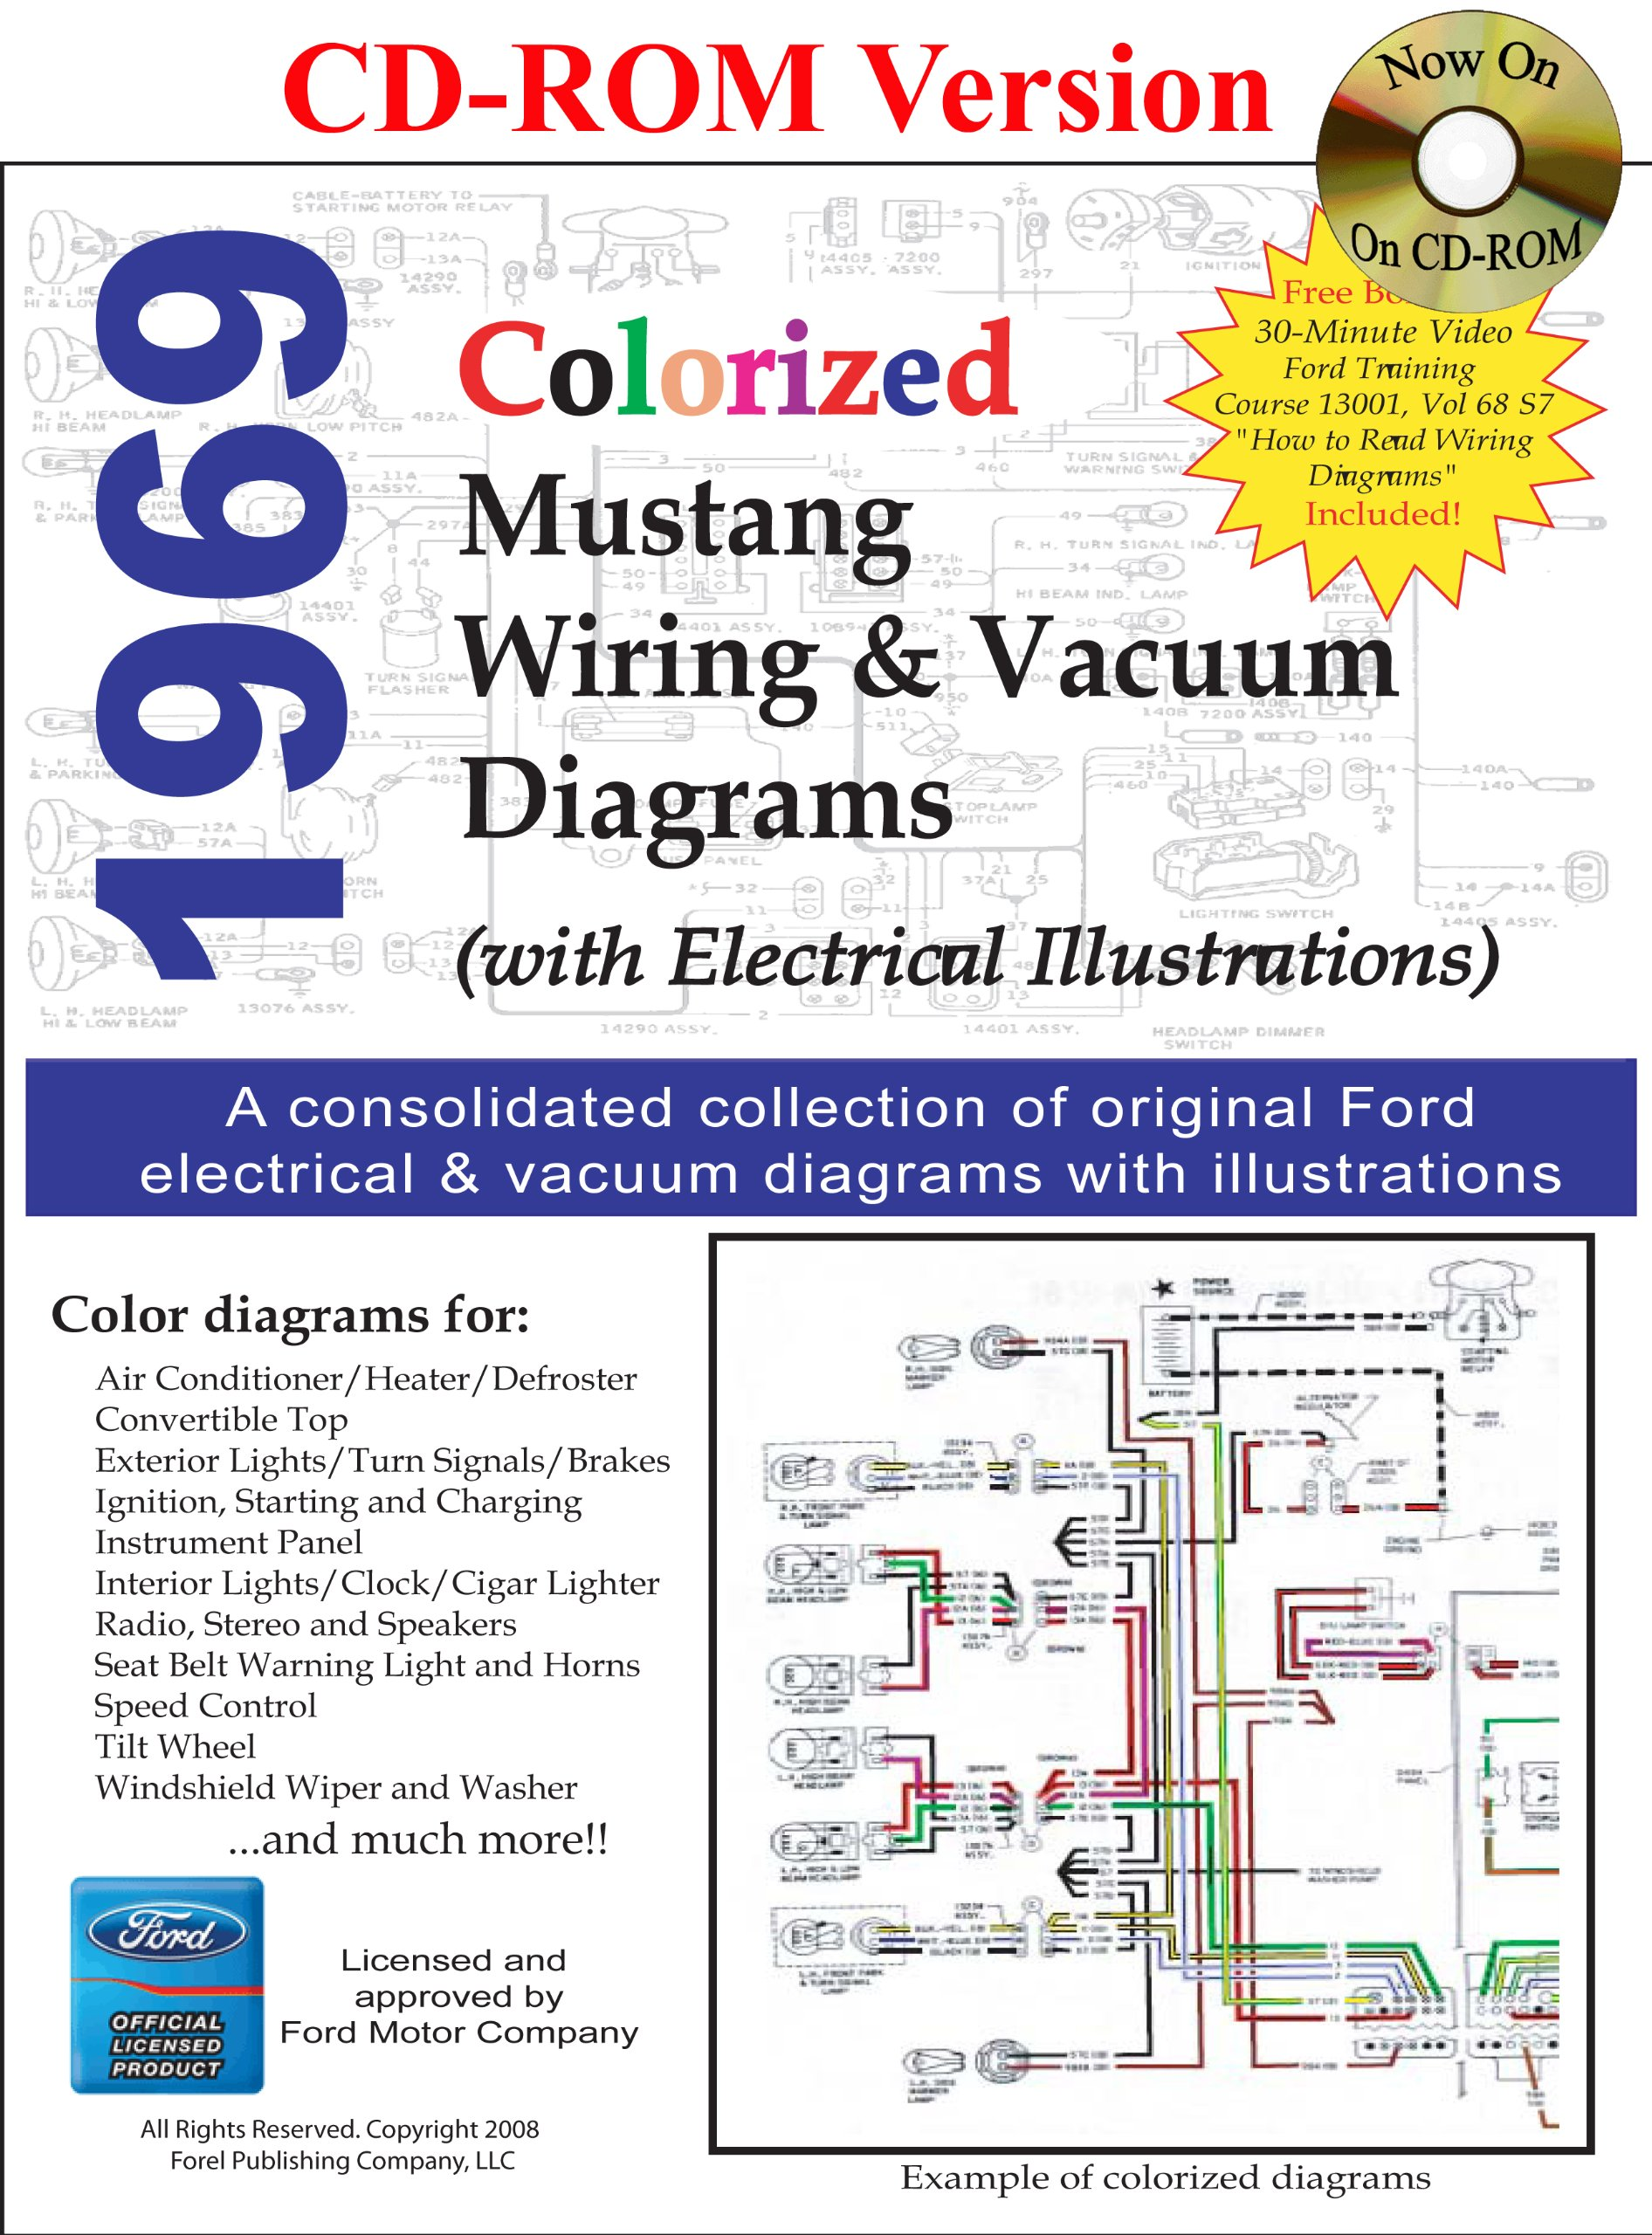 1969 Colorized Mustang Wiring Vacuum Diagrams David E Leblanc Electric Furnace Diagram Get Free Image About 9781603710282 Books